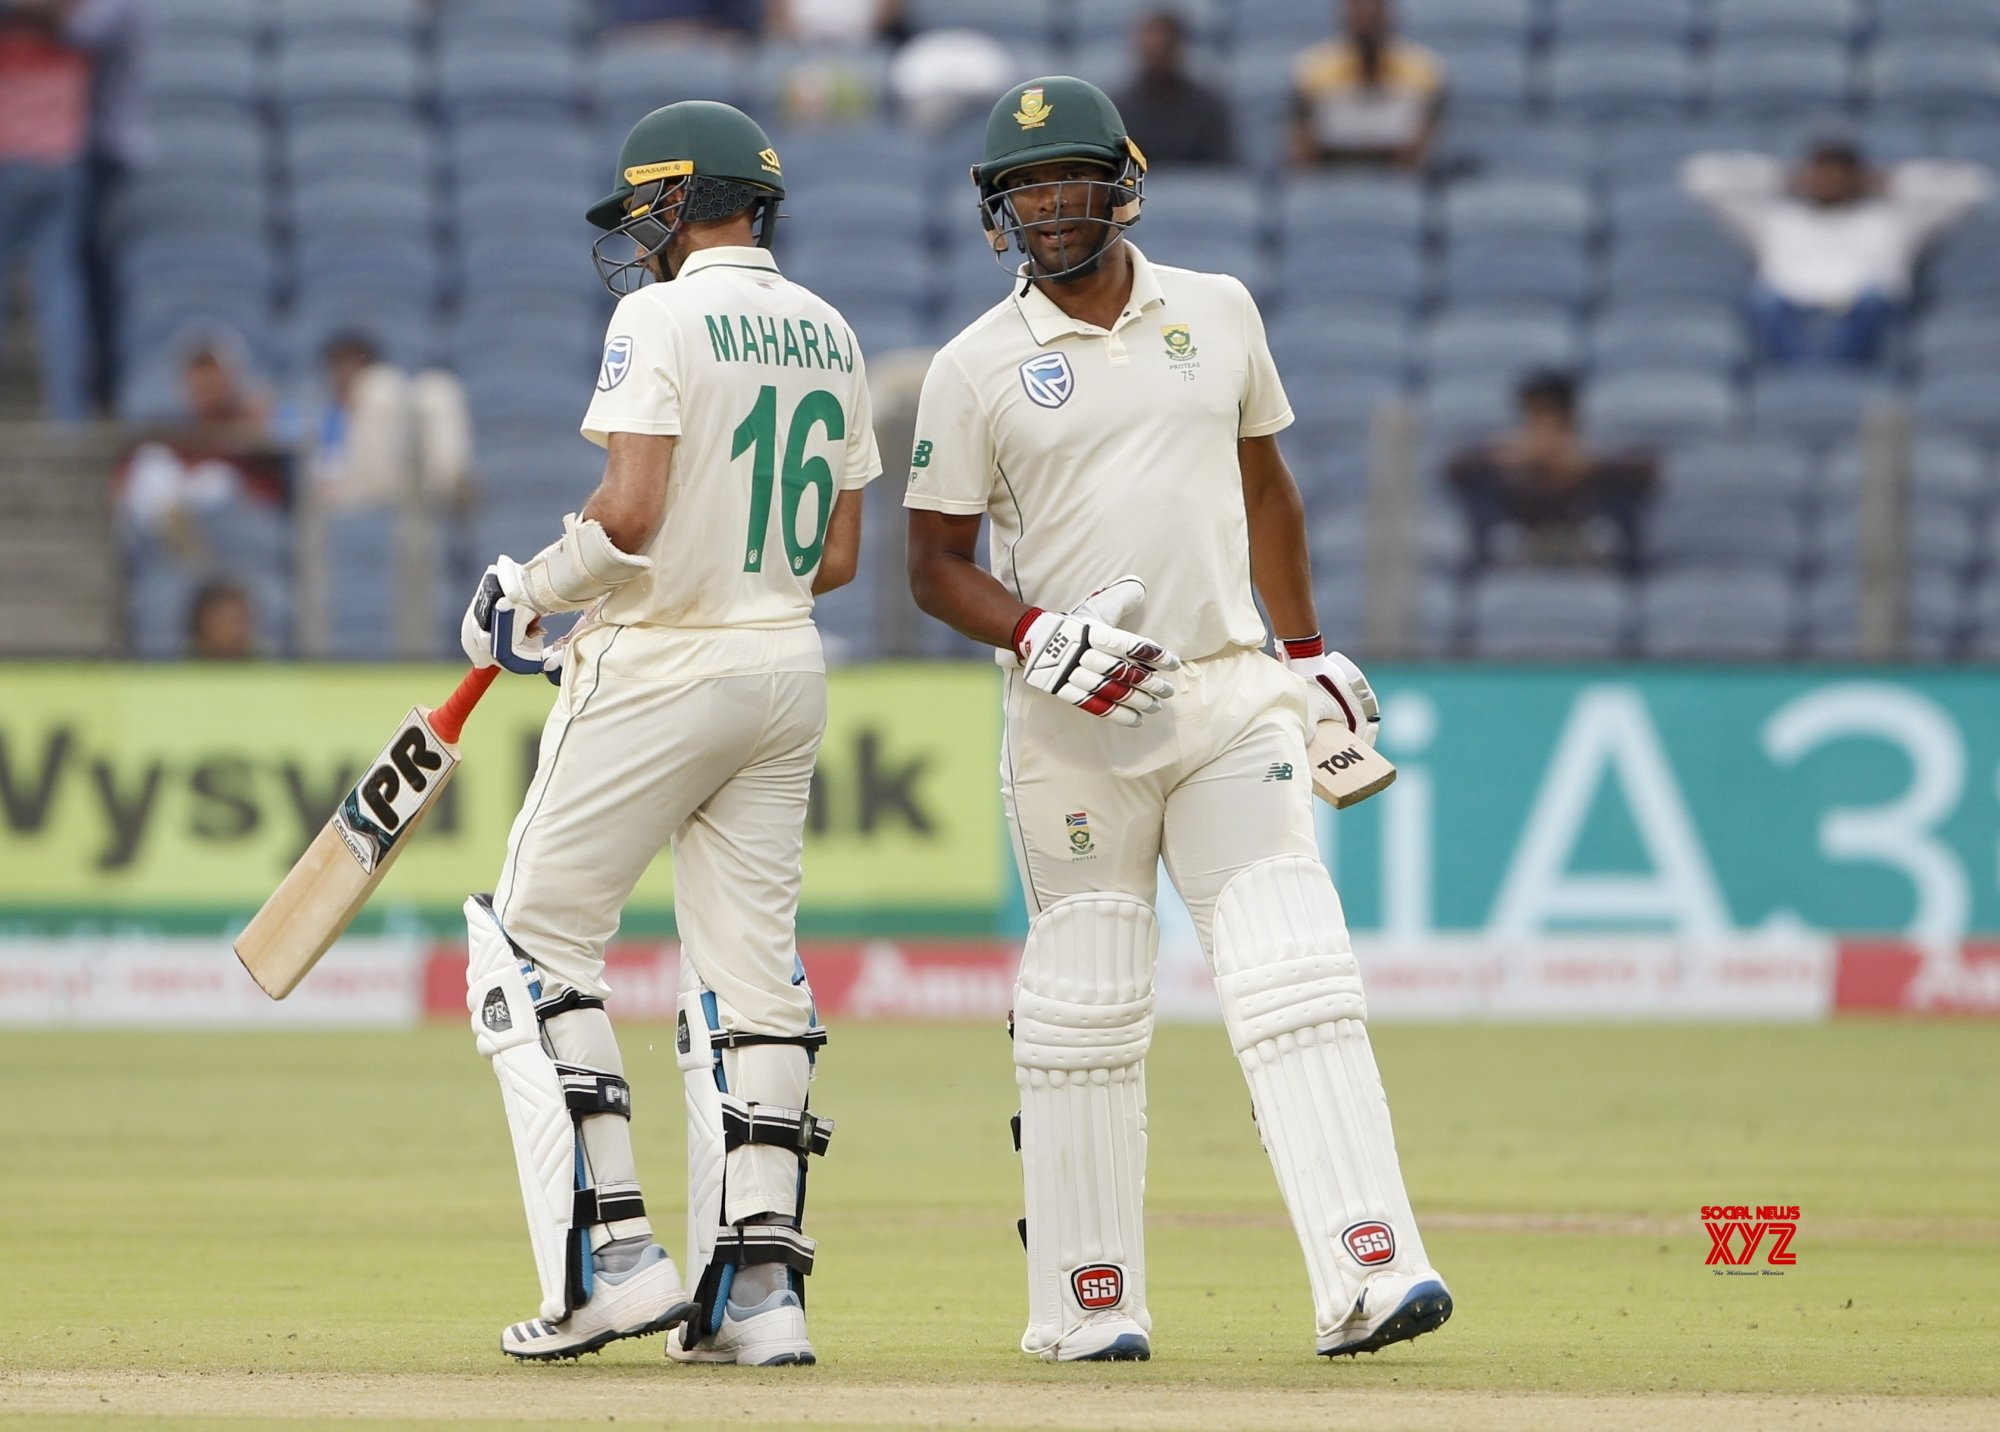 Pune: 2nd Test - India Vs South Africa - Day 3 (Batch - 20) #Gallery